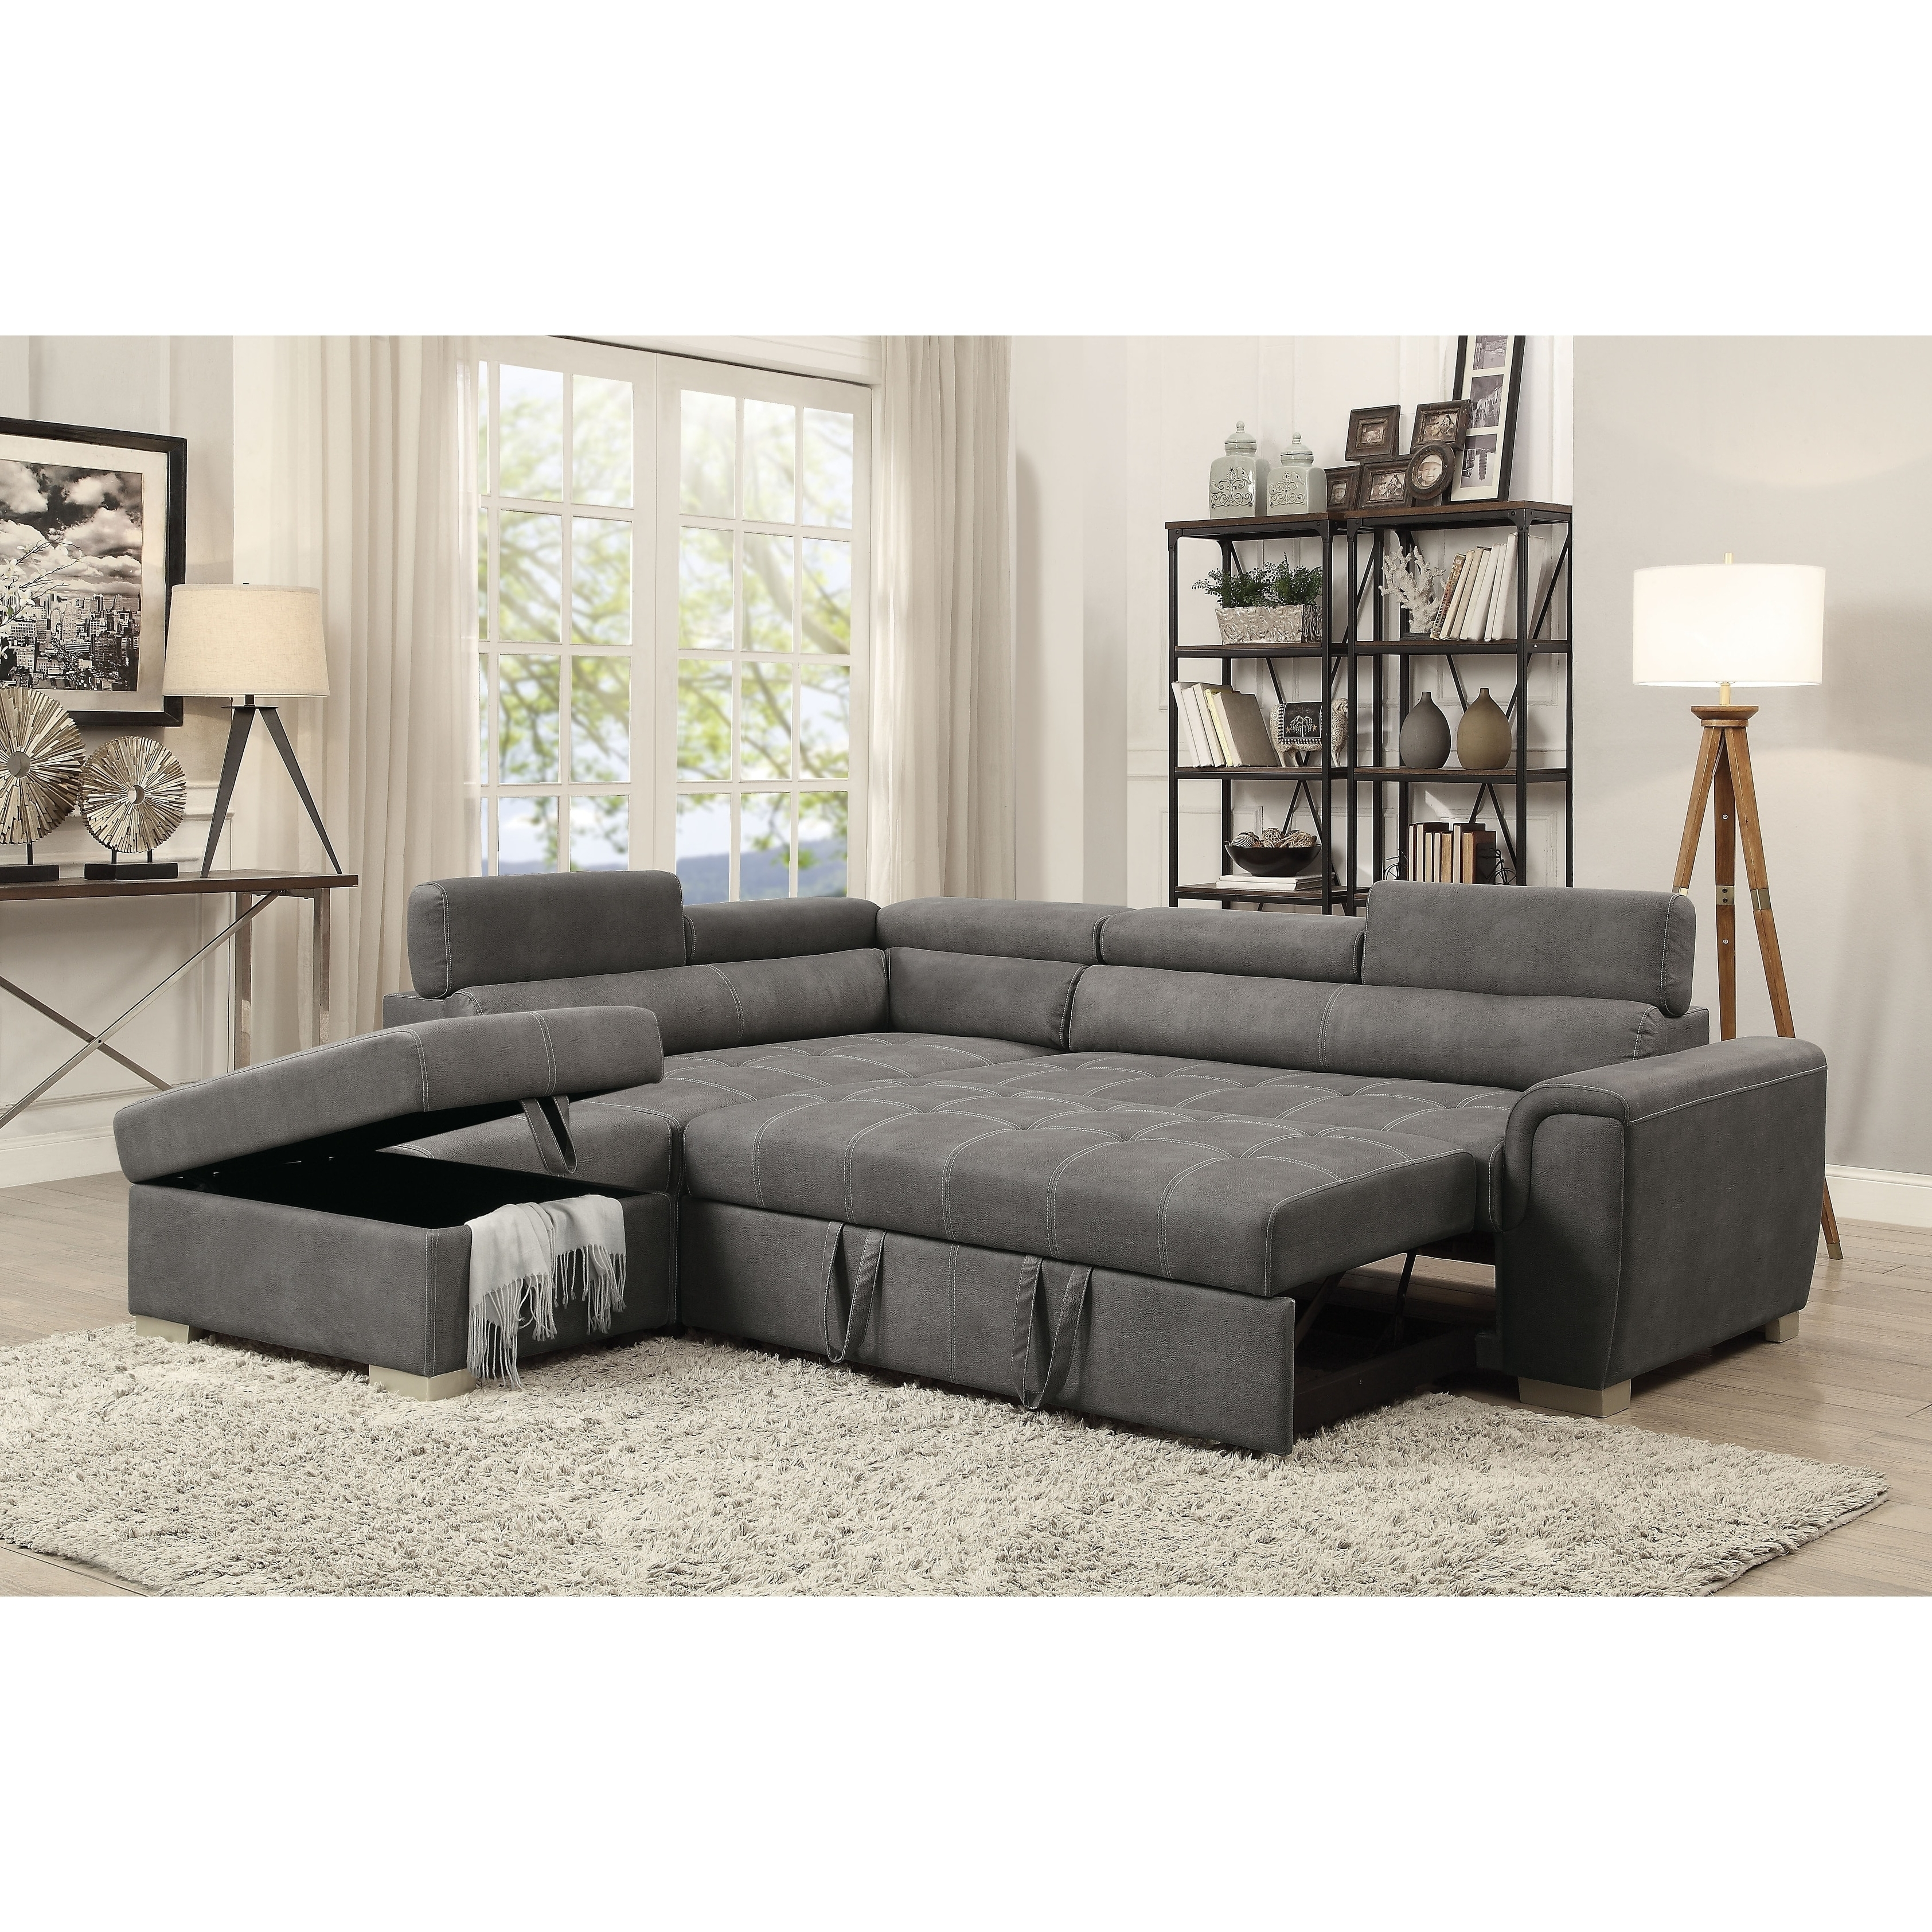 Most Recently Released Acme Thelma Grey Microfiber L Shaped Sectional Sofa With Sleeper Inside Sofas With Chaise And Ottoman (View 8 of 20)